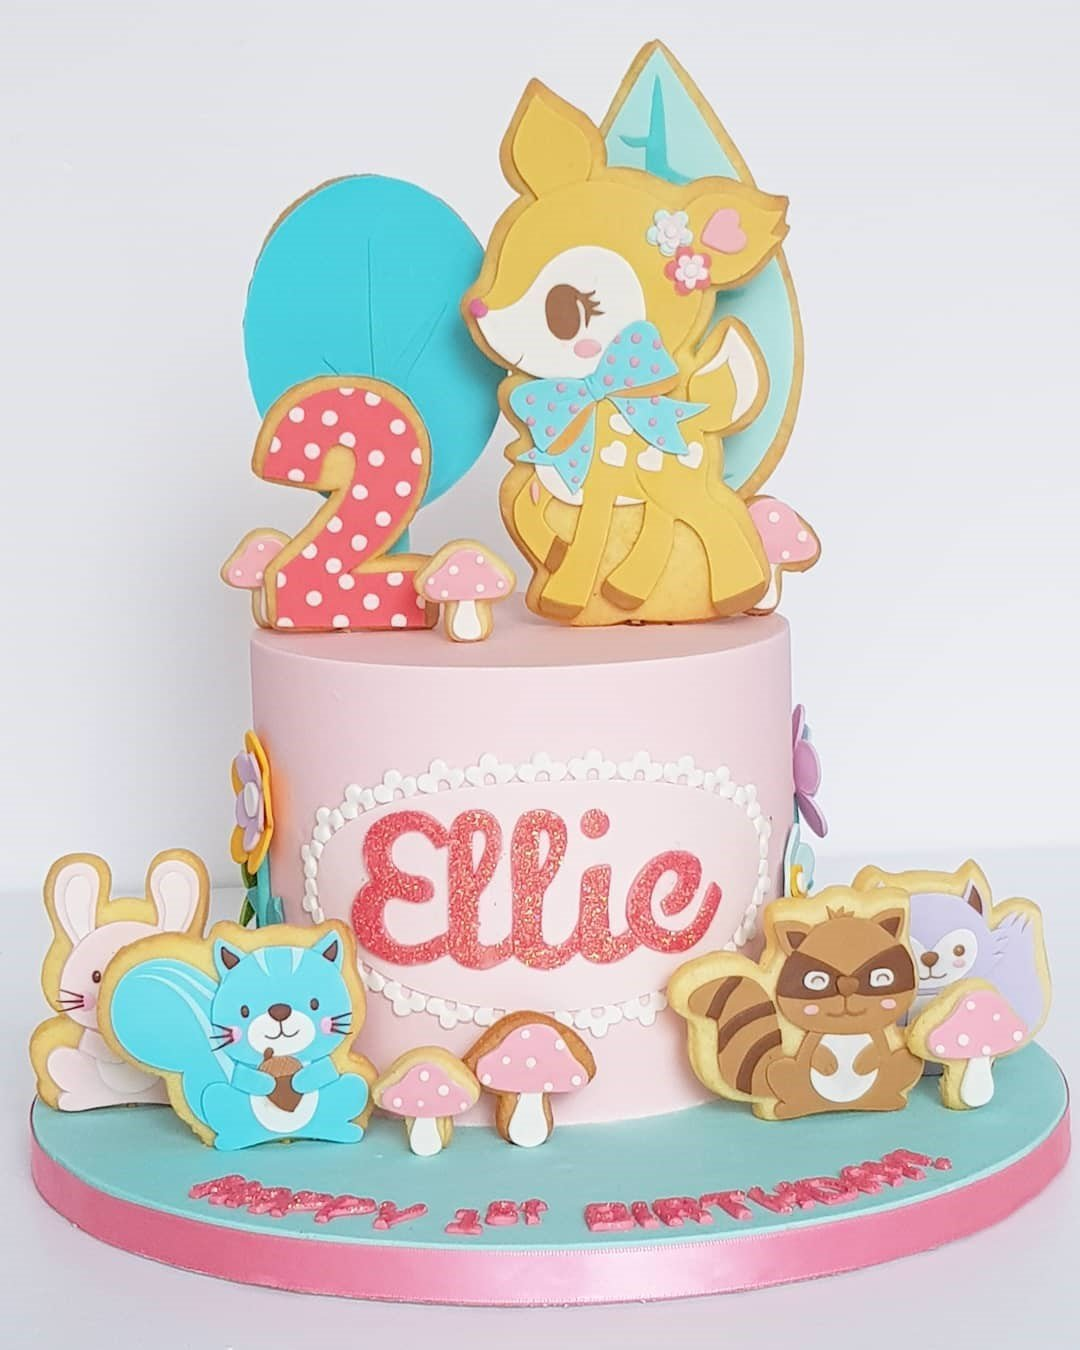 Fairyland Cake - Cake for Kids Dubai - Pandoracake.ae